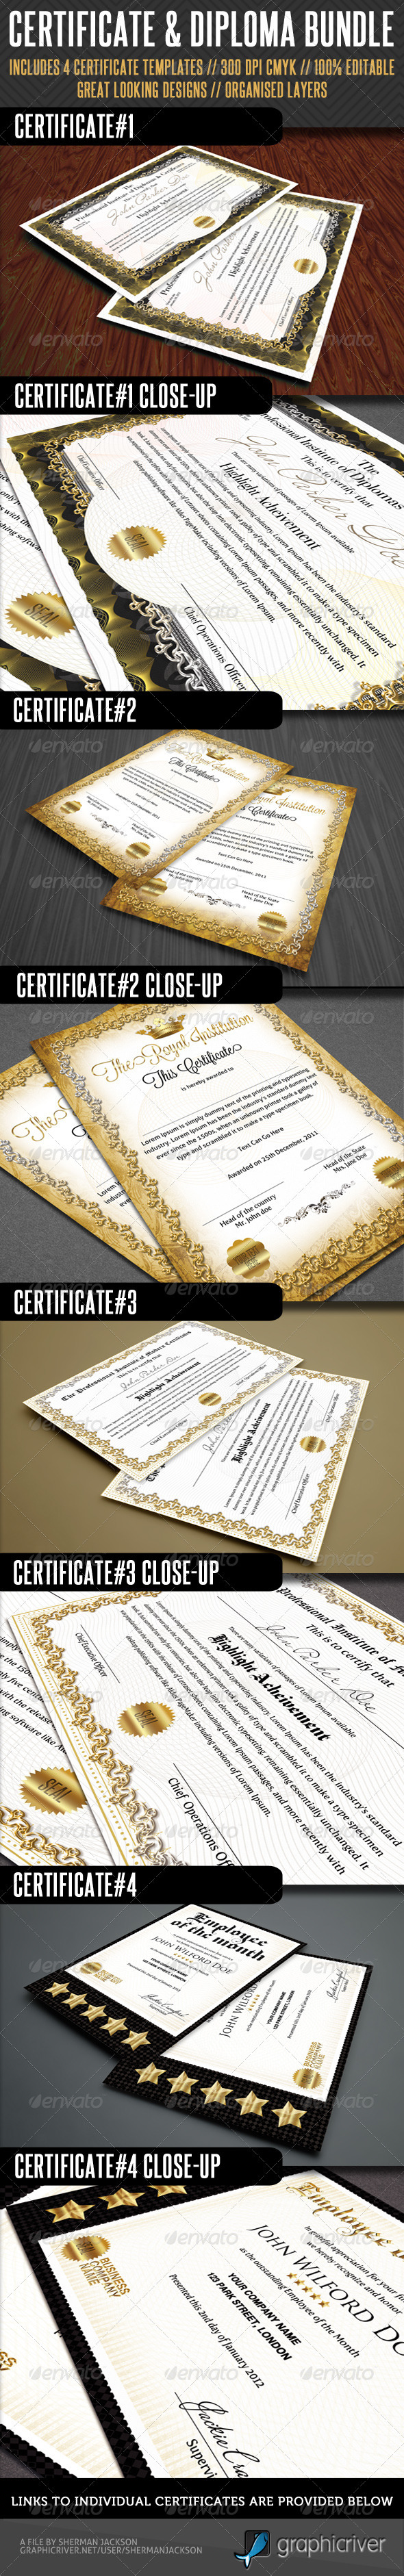 Premium Certificate Bundle - GraphicRiver Item for Sale